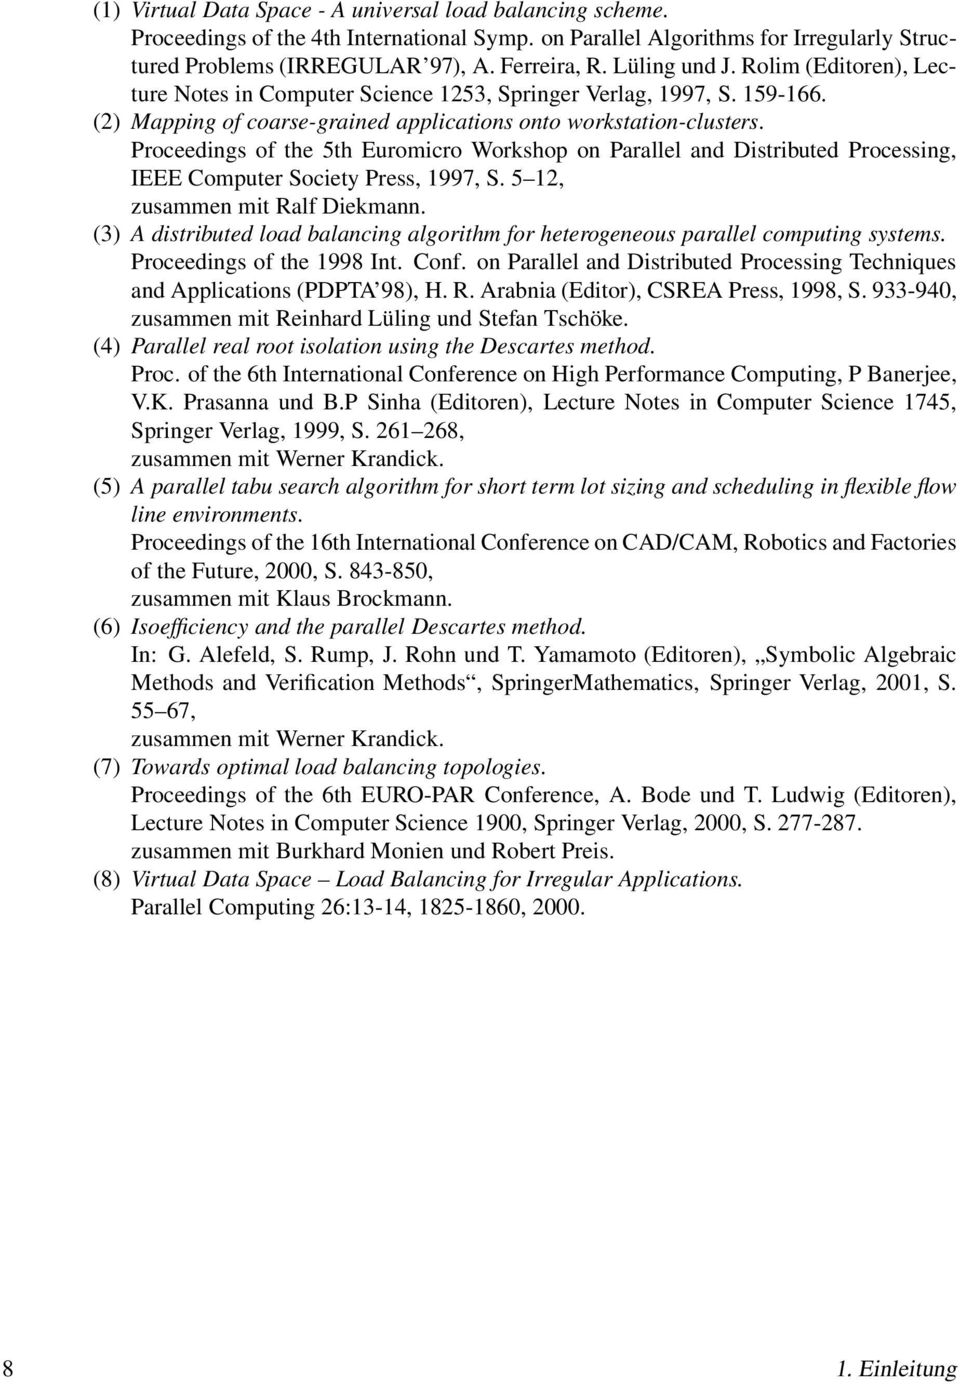 Proceedings of the 5th Euromicro Workshop on Parallel and Distributed Processing, IEEE Computer Society Press, 1997, S. 5 12, zusammen mit Ralf Diekmann.